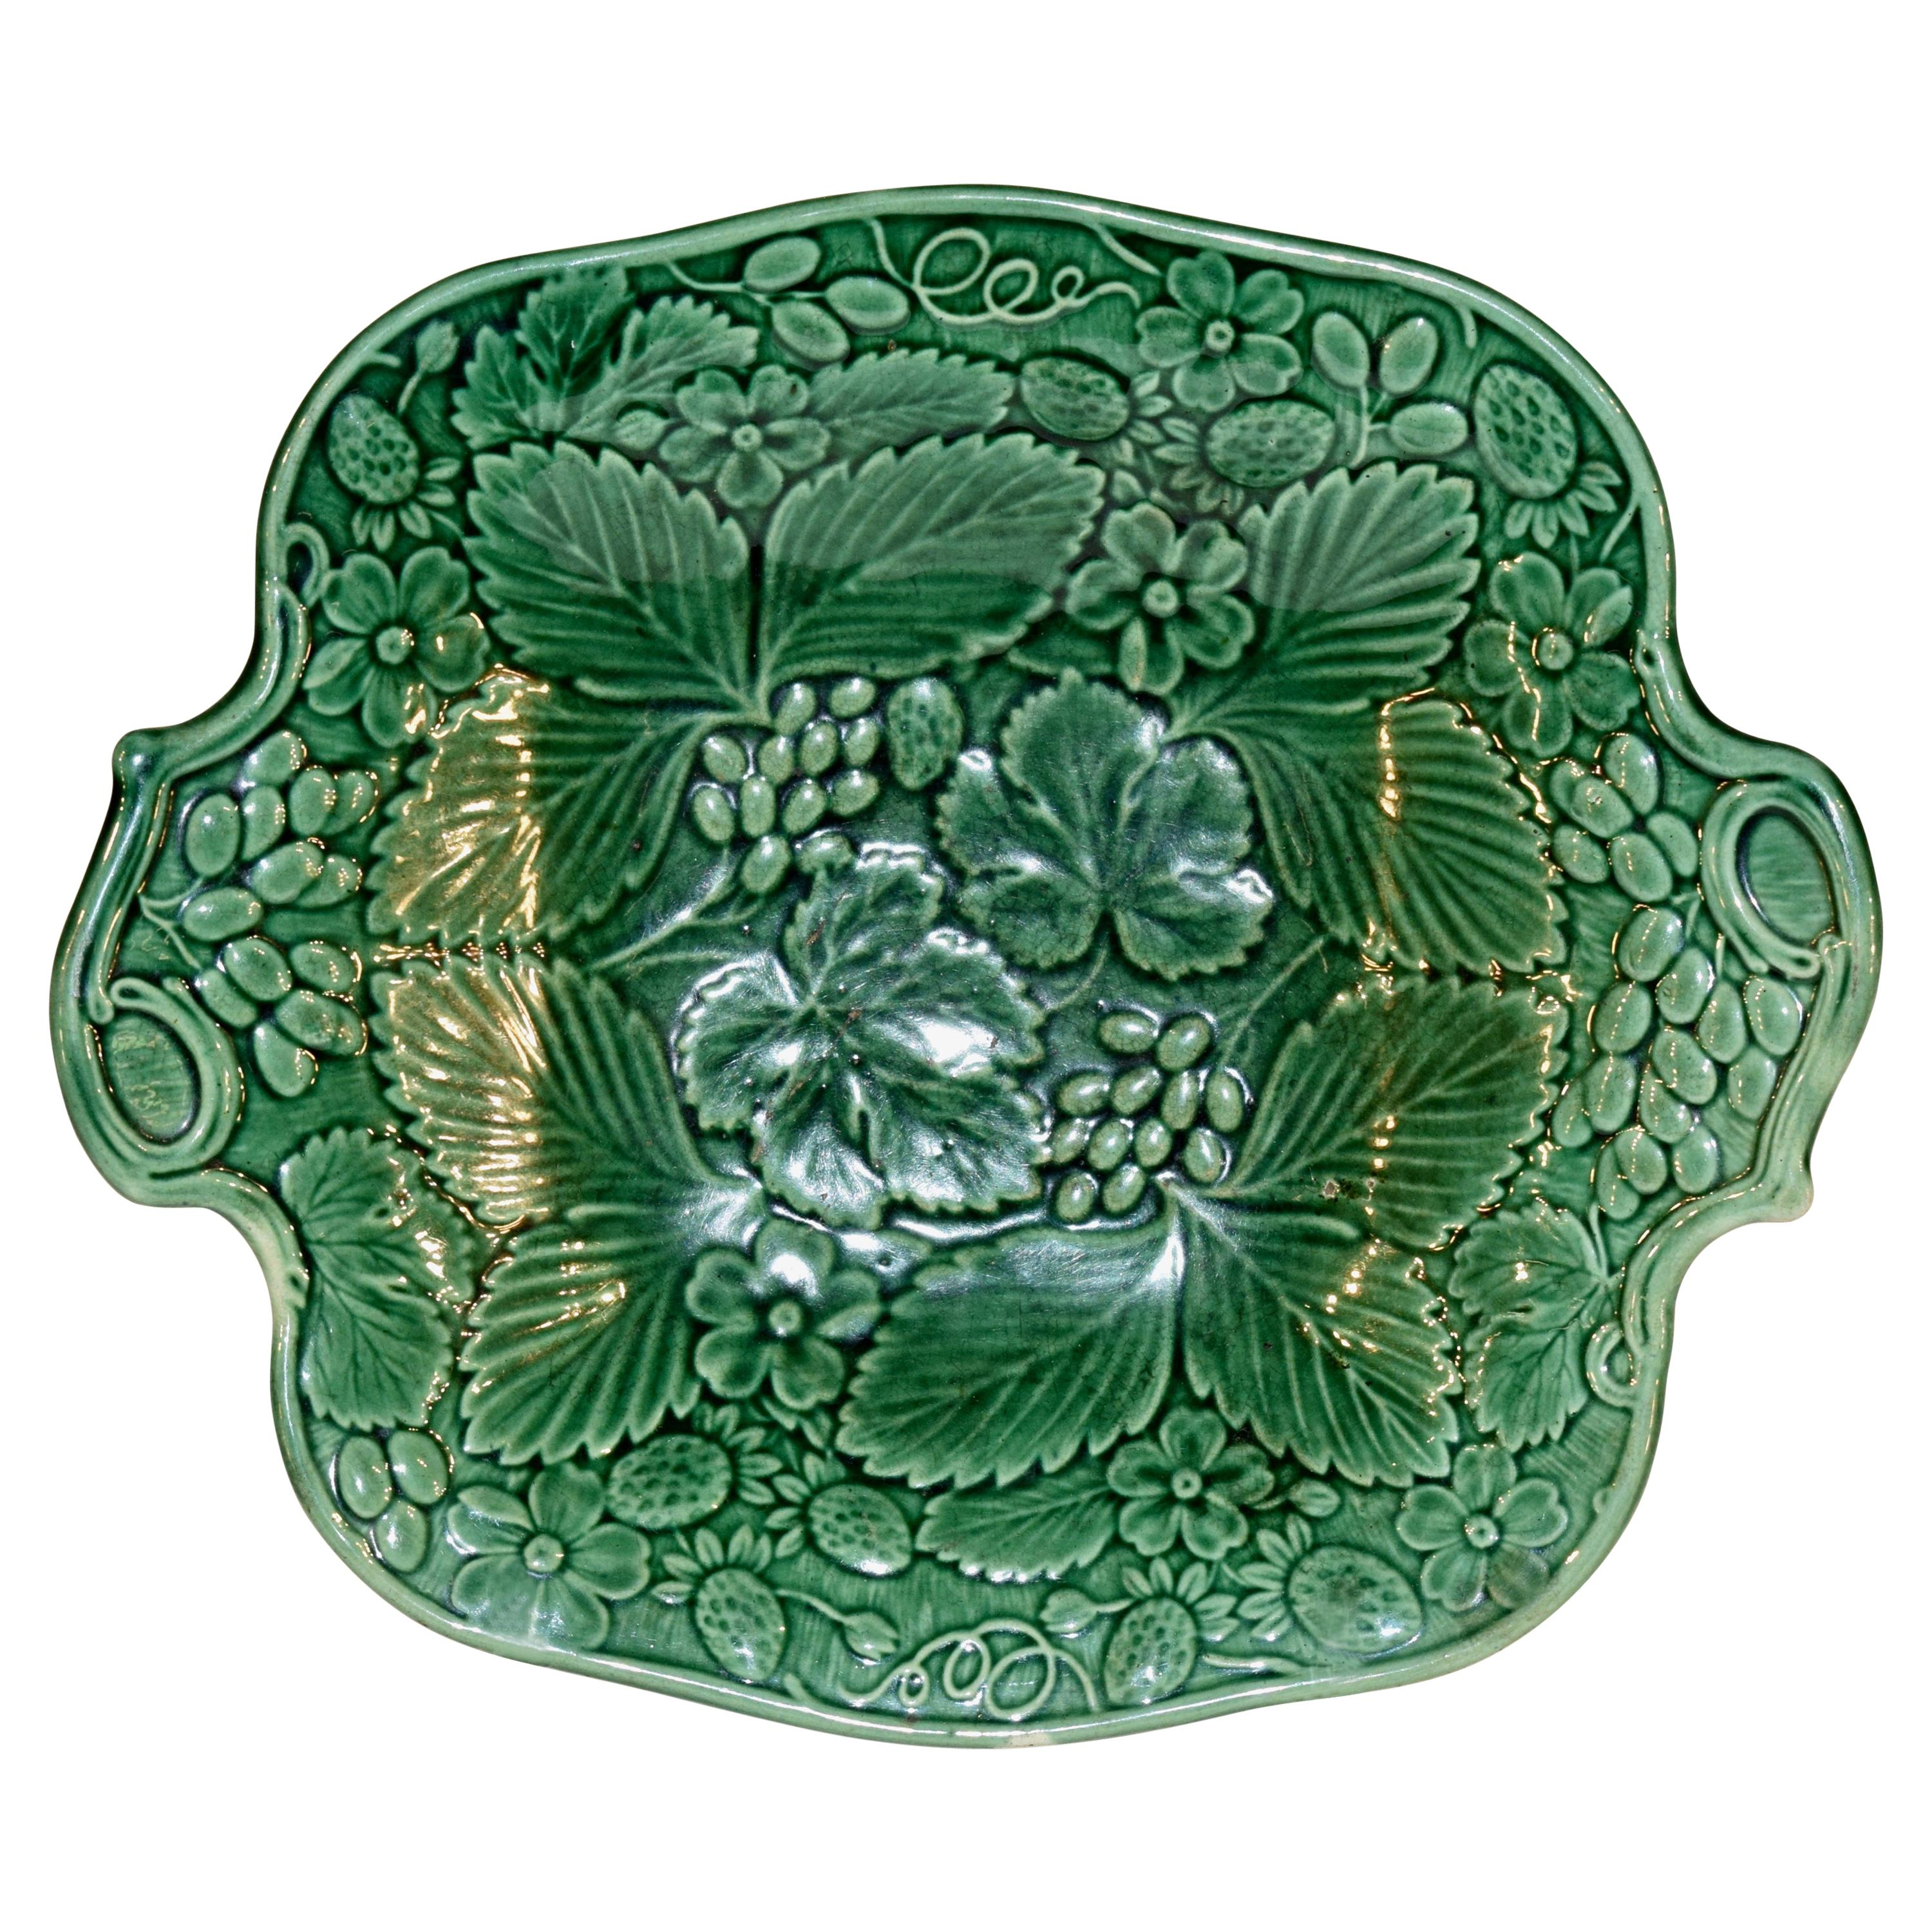 19th Century Majolica Handled Dish